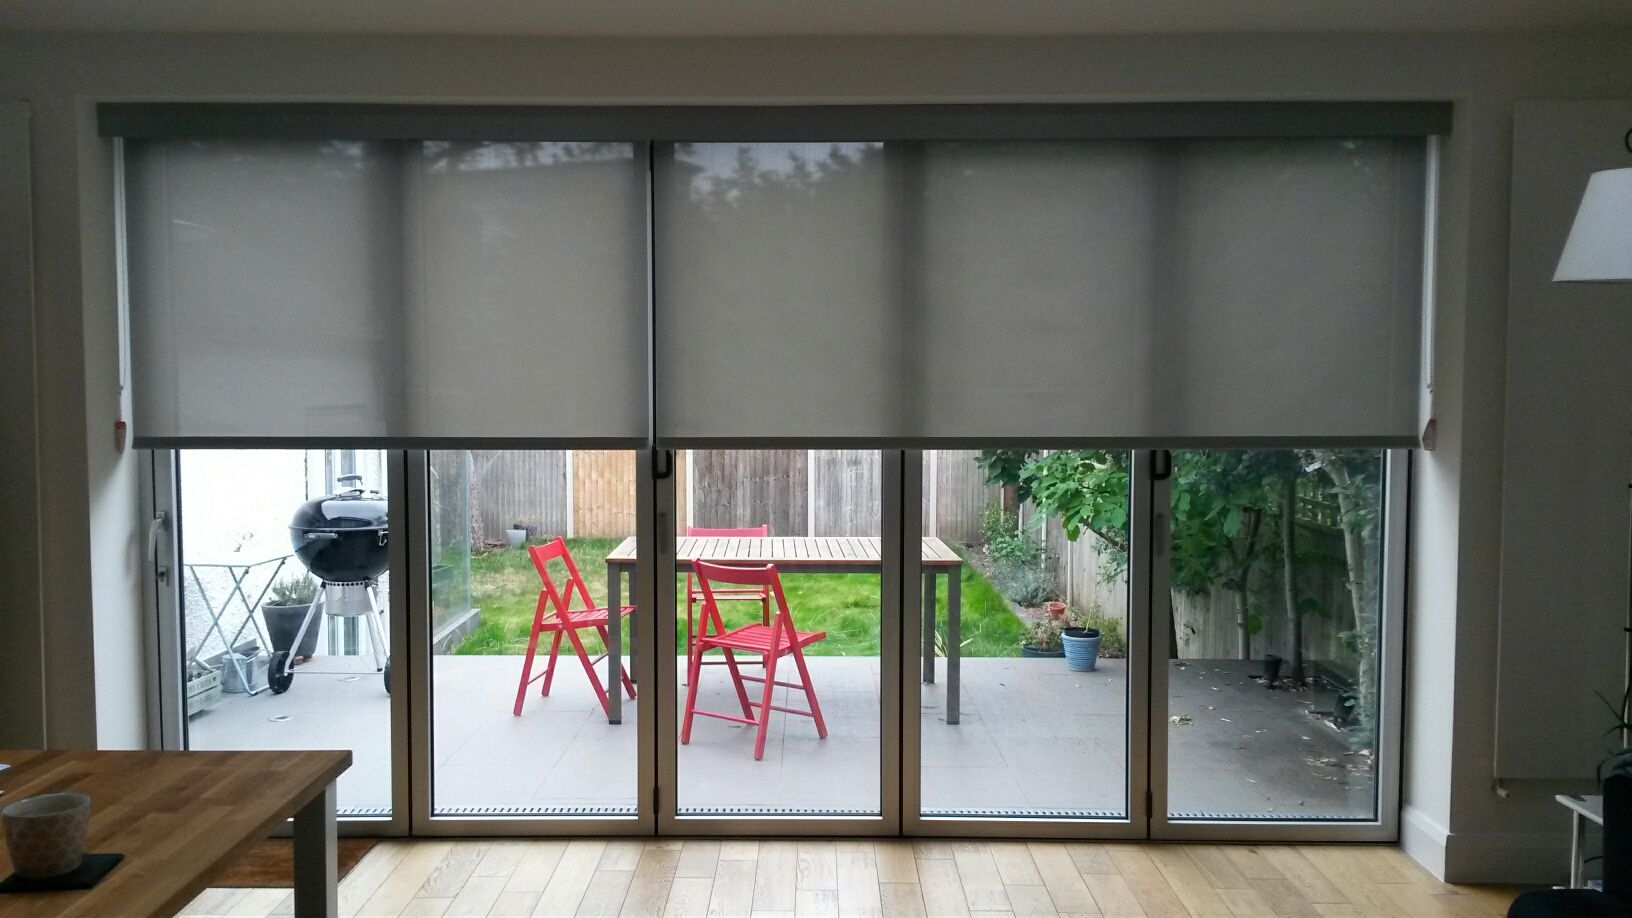 Blfold Door Blinds Specialist Screen Fabrics Cover Huge